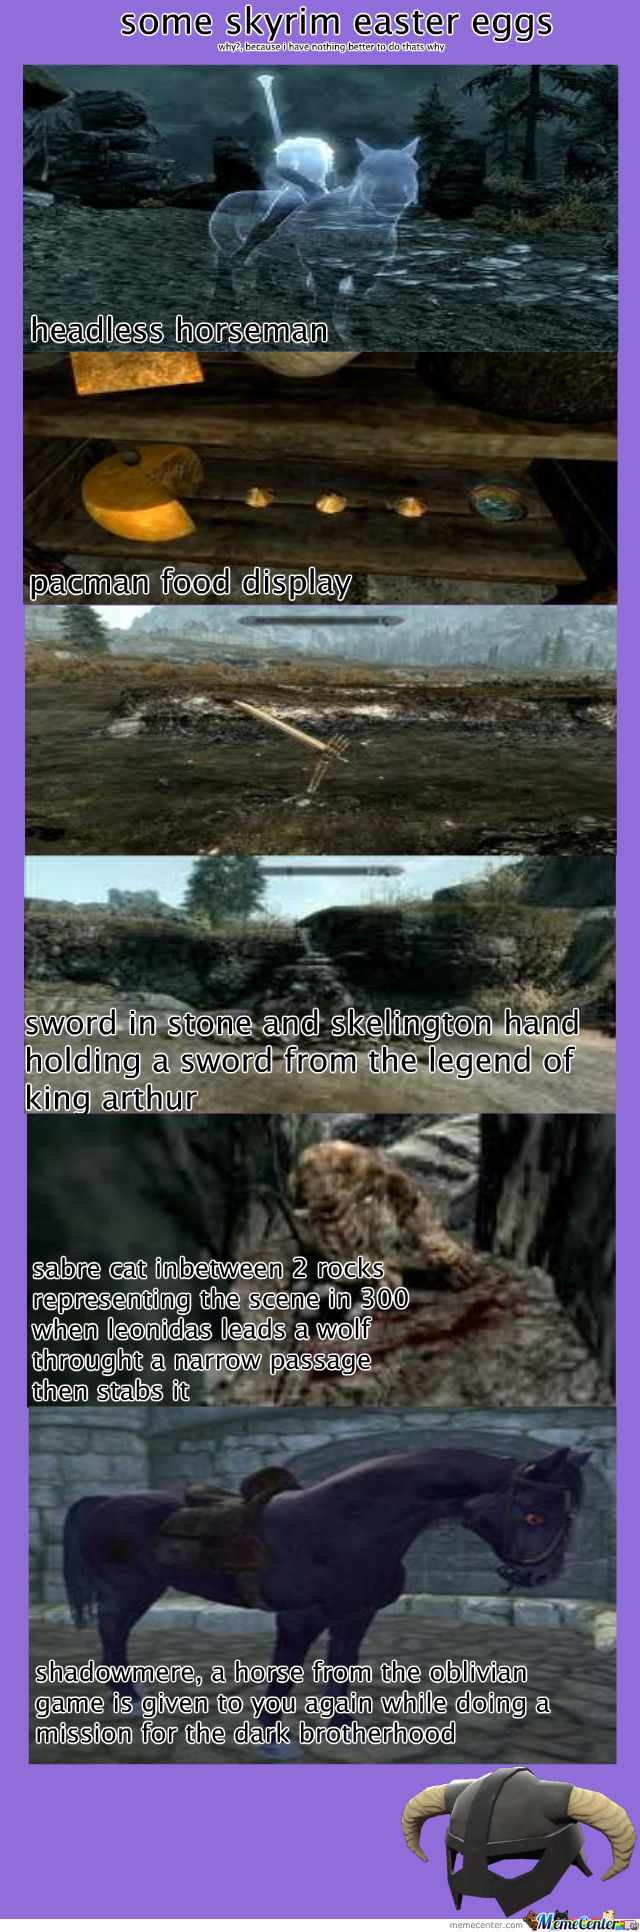 Skyrim Easter Eggs